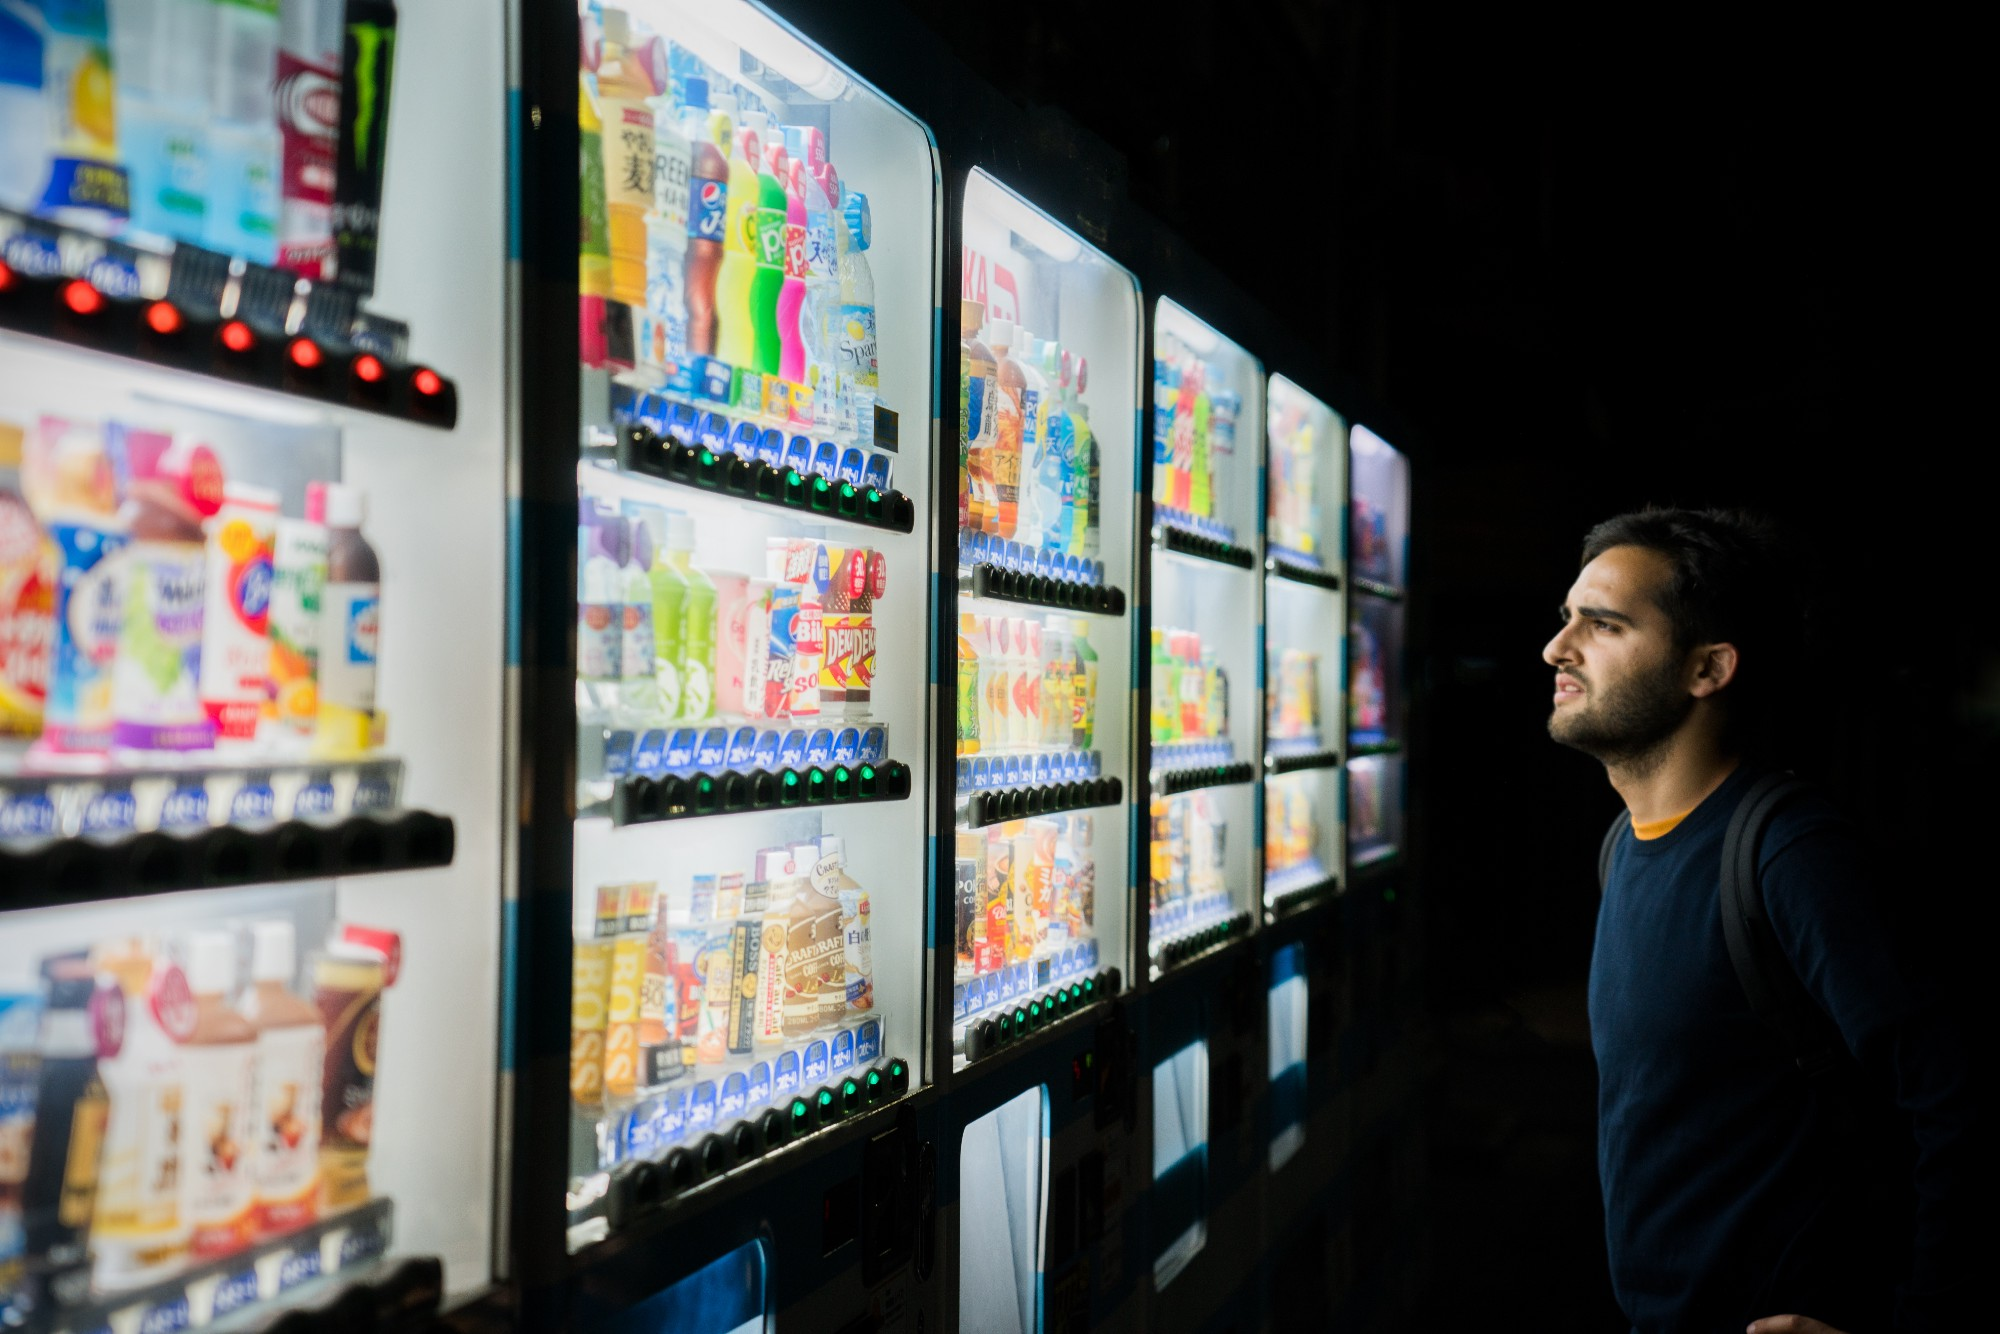 Man standing in front of vending machines